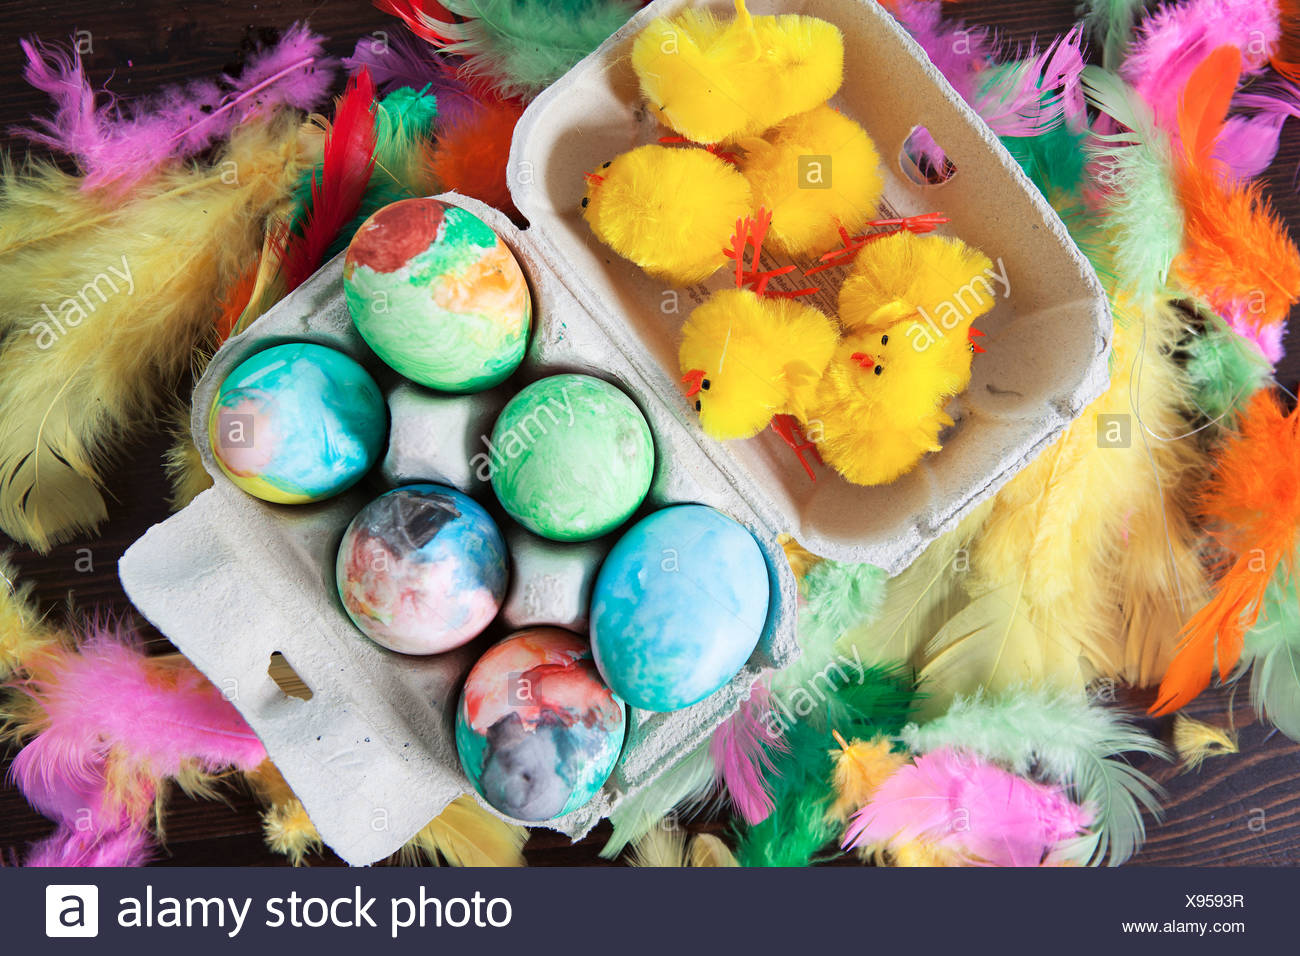 Elevated view of painted Easter eggs and baby chickens - Stock Image